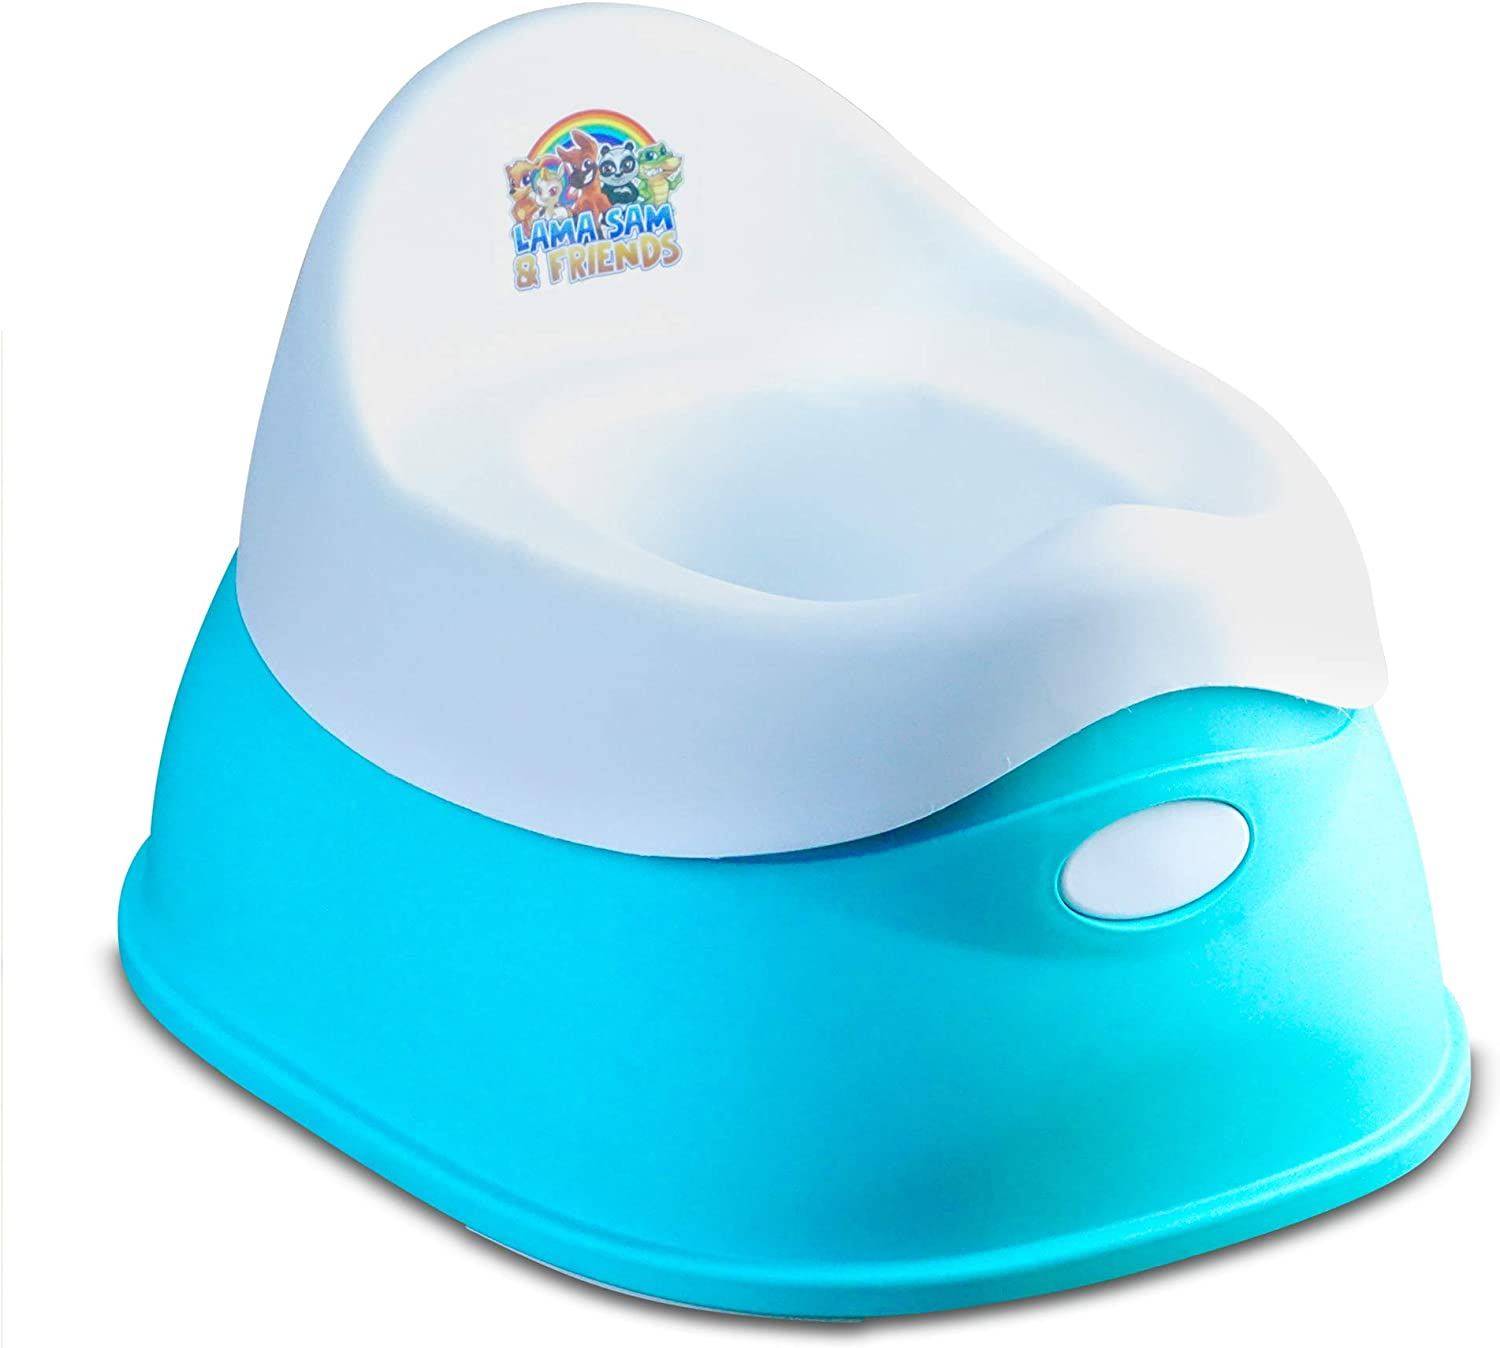 Smart Plastic Potty for Baby and /& Toddler Lama Sam /& Friends Grey - Model 2019 Model 2019